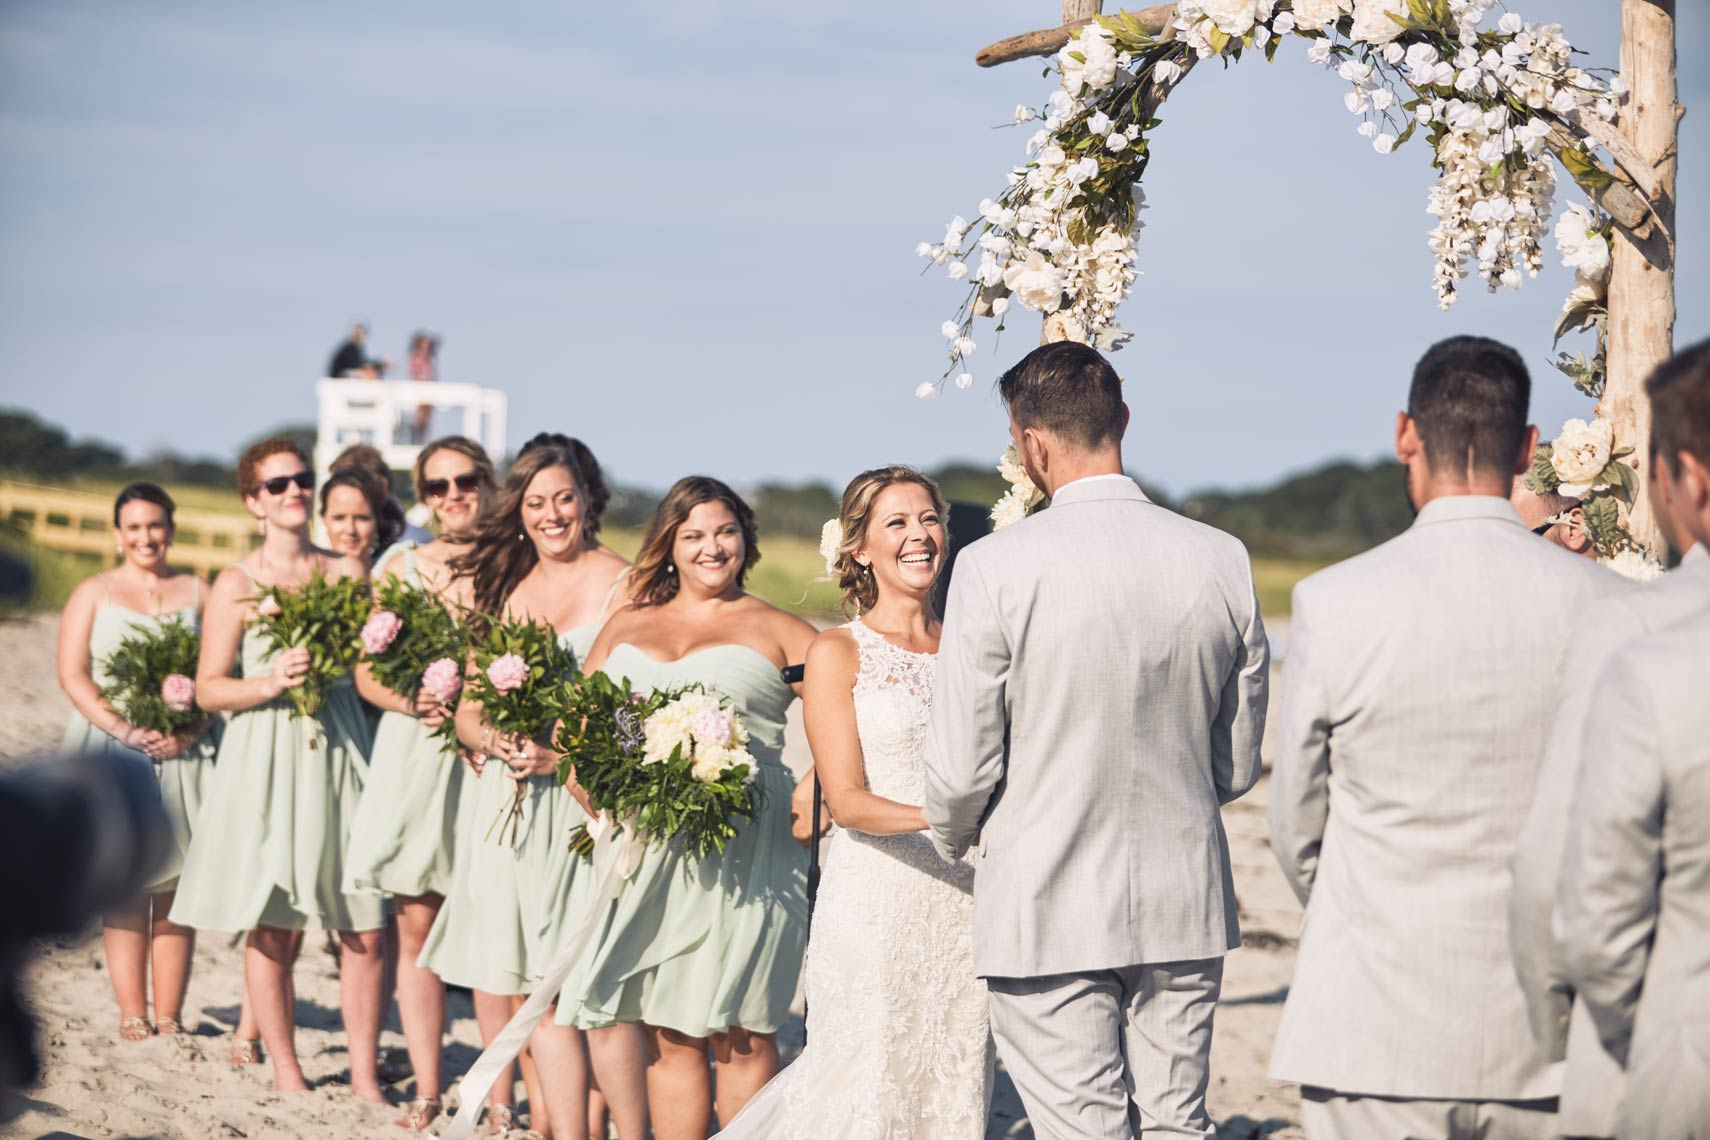 Mainecoastweddingphotography-bq167